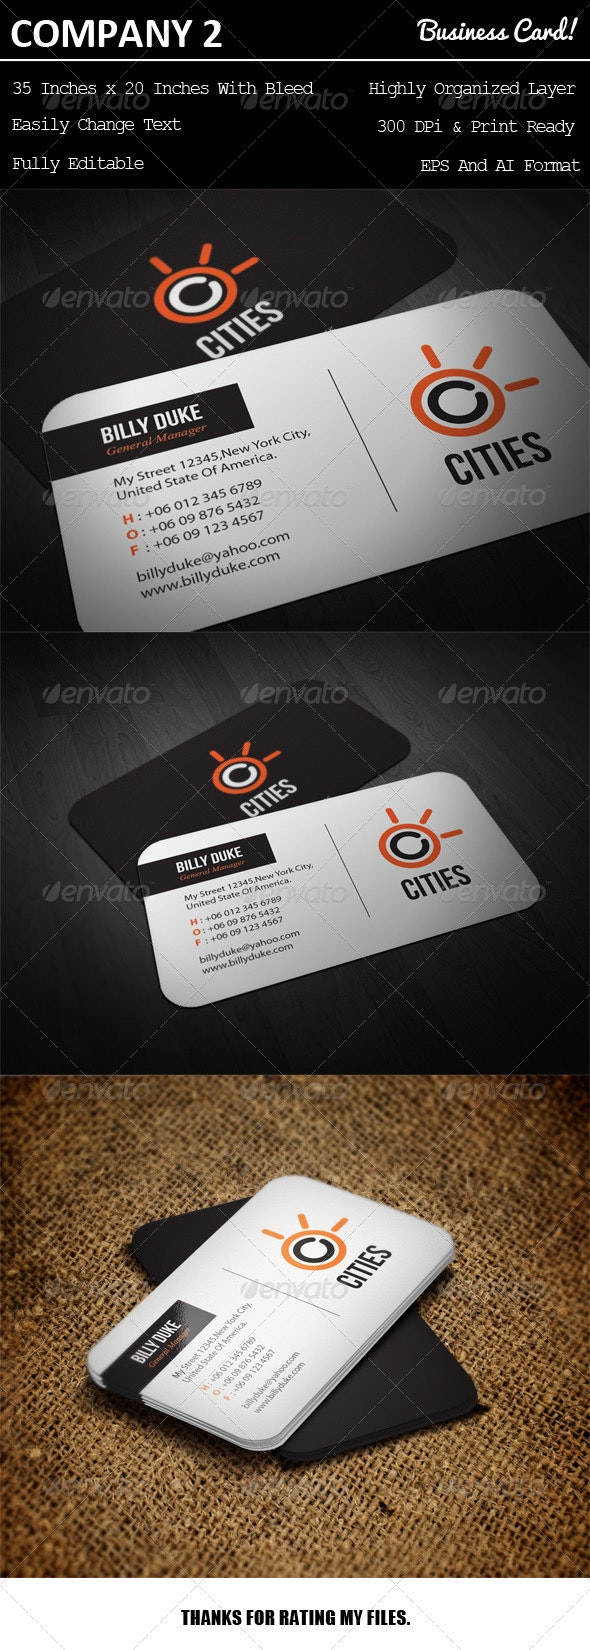 Company Business Card 2 - Creative Business Cards